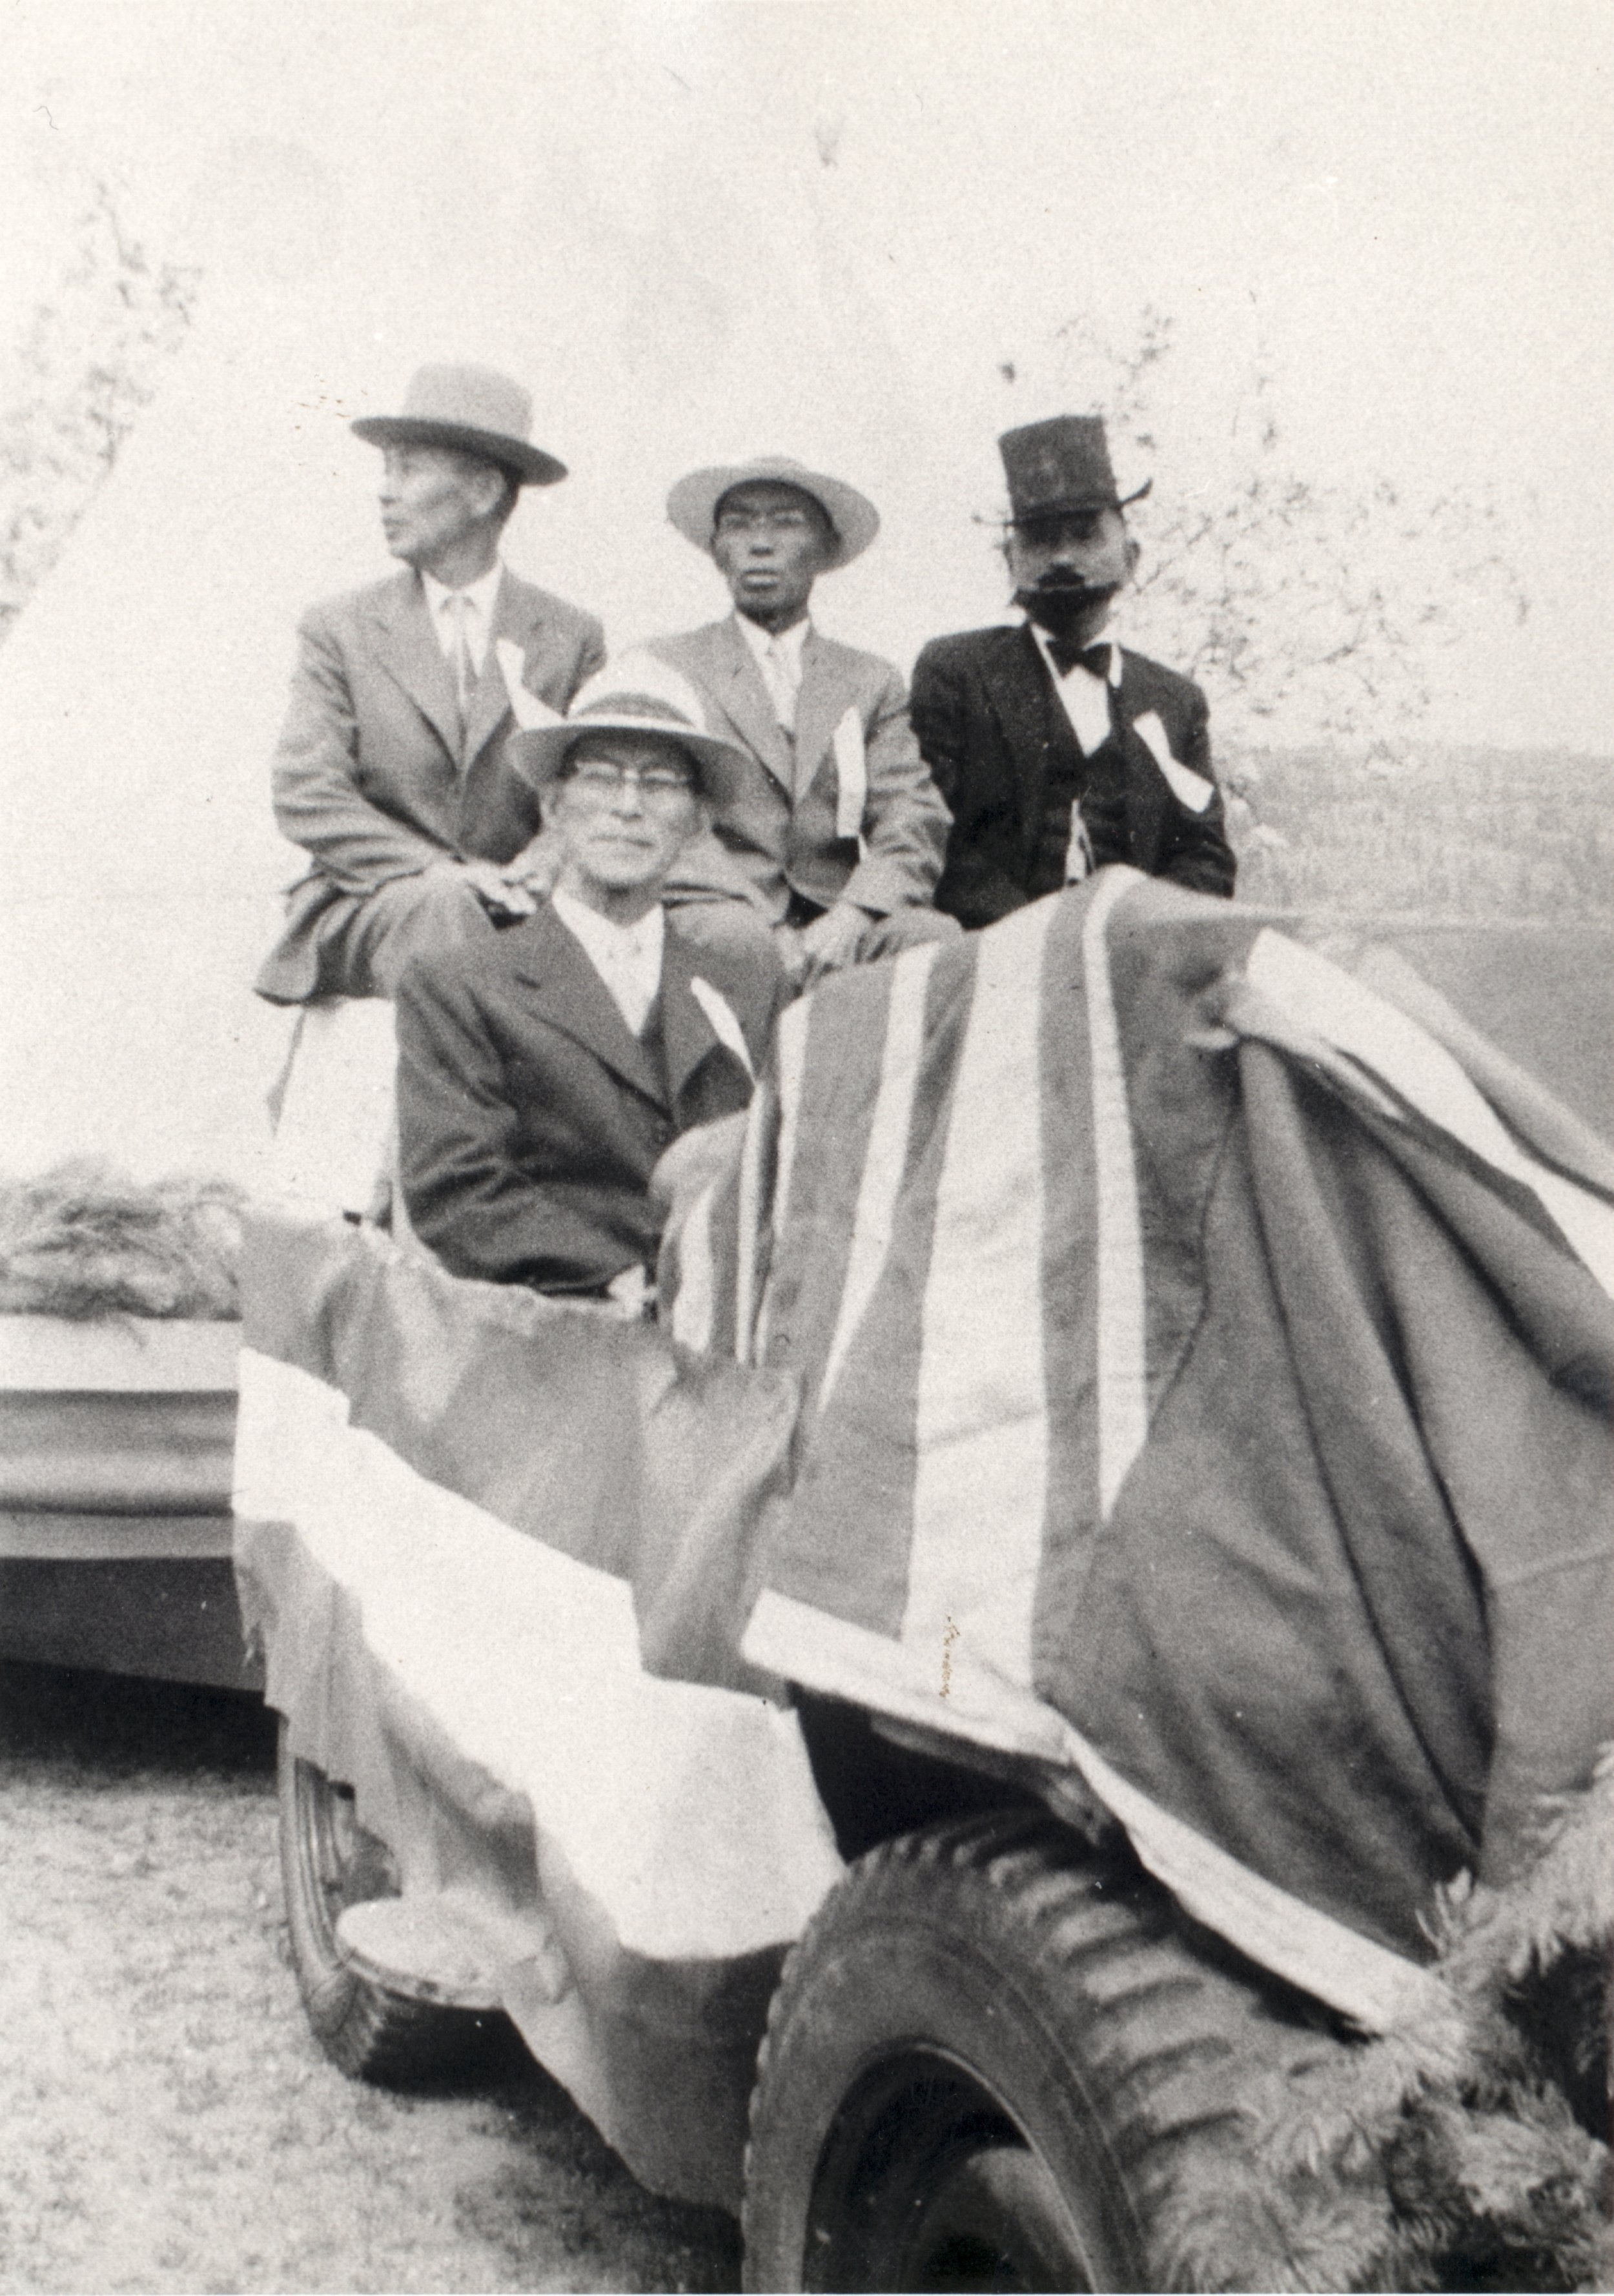 Kichinojo (Jack) Imayoshi, Mac Kuroda, Tom Kato, and Kew Kita (at front) sitting in decorated car that is pulling the Japanese float for the Golden Jubilee parade in 1956.